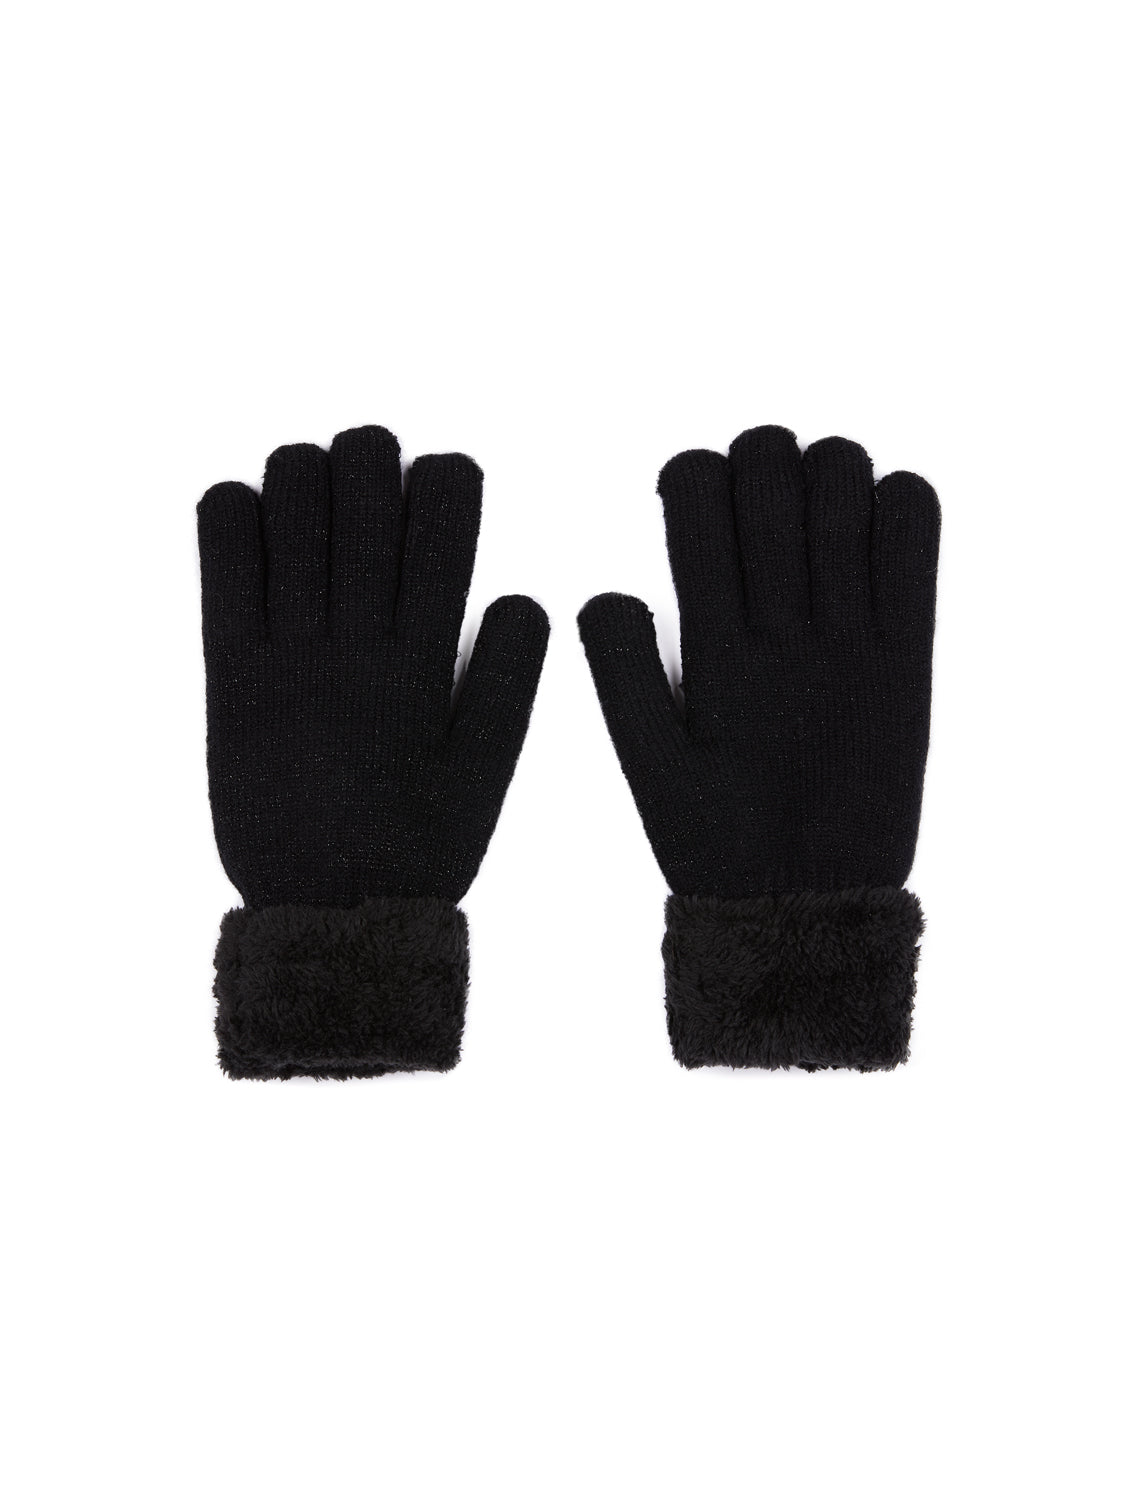 Black Metallic Fiber Gloves